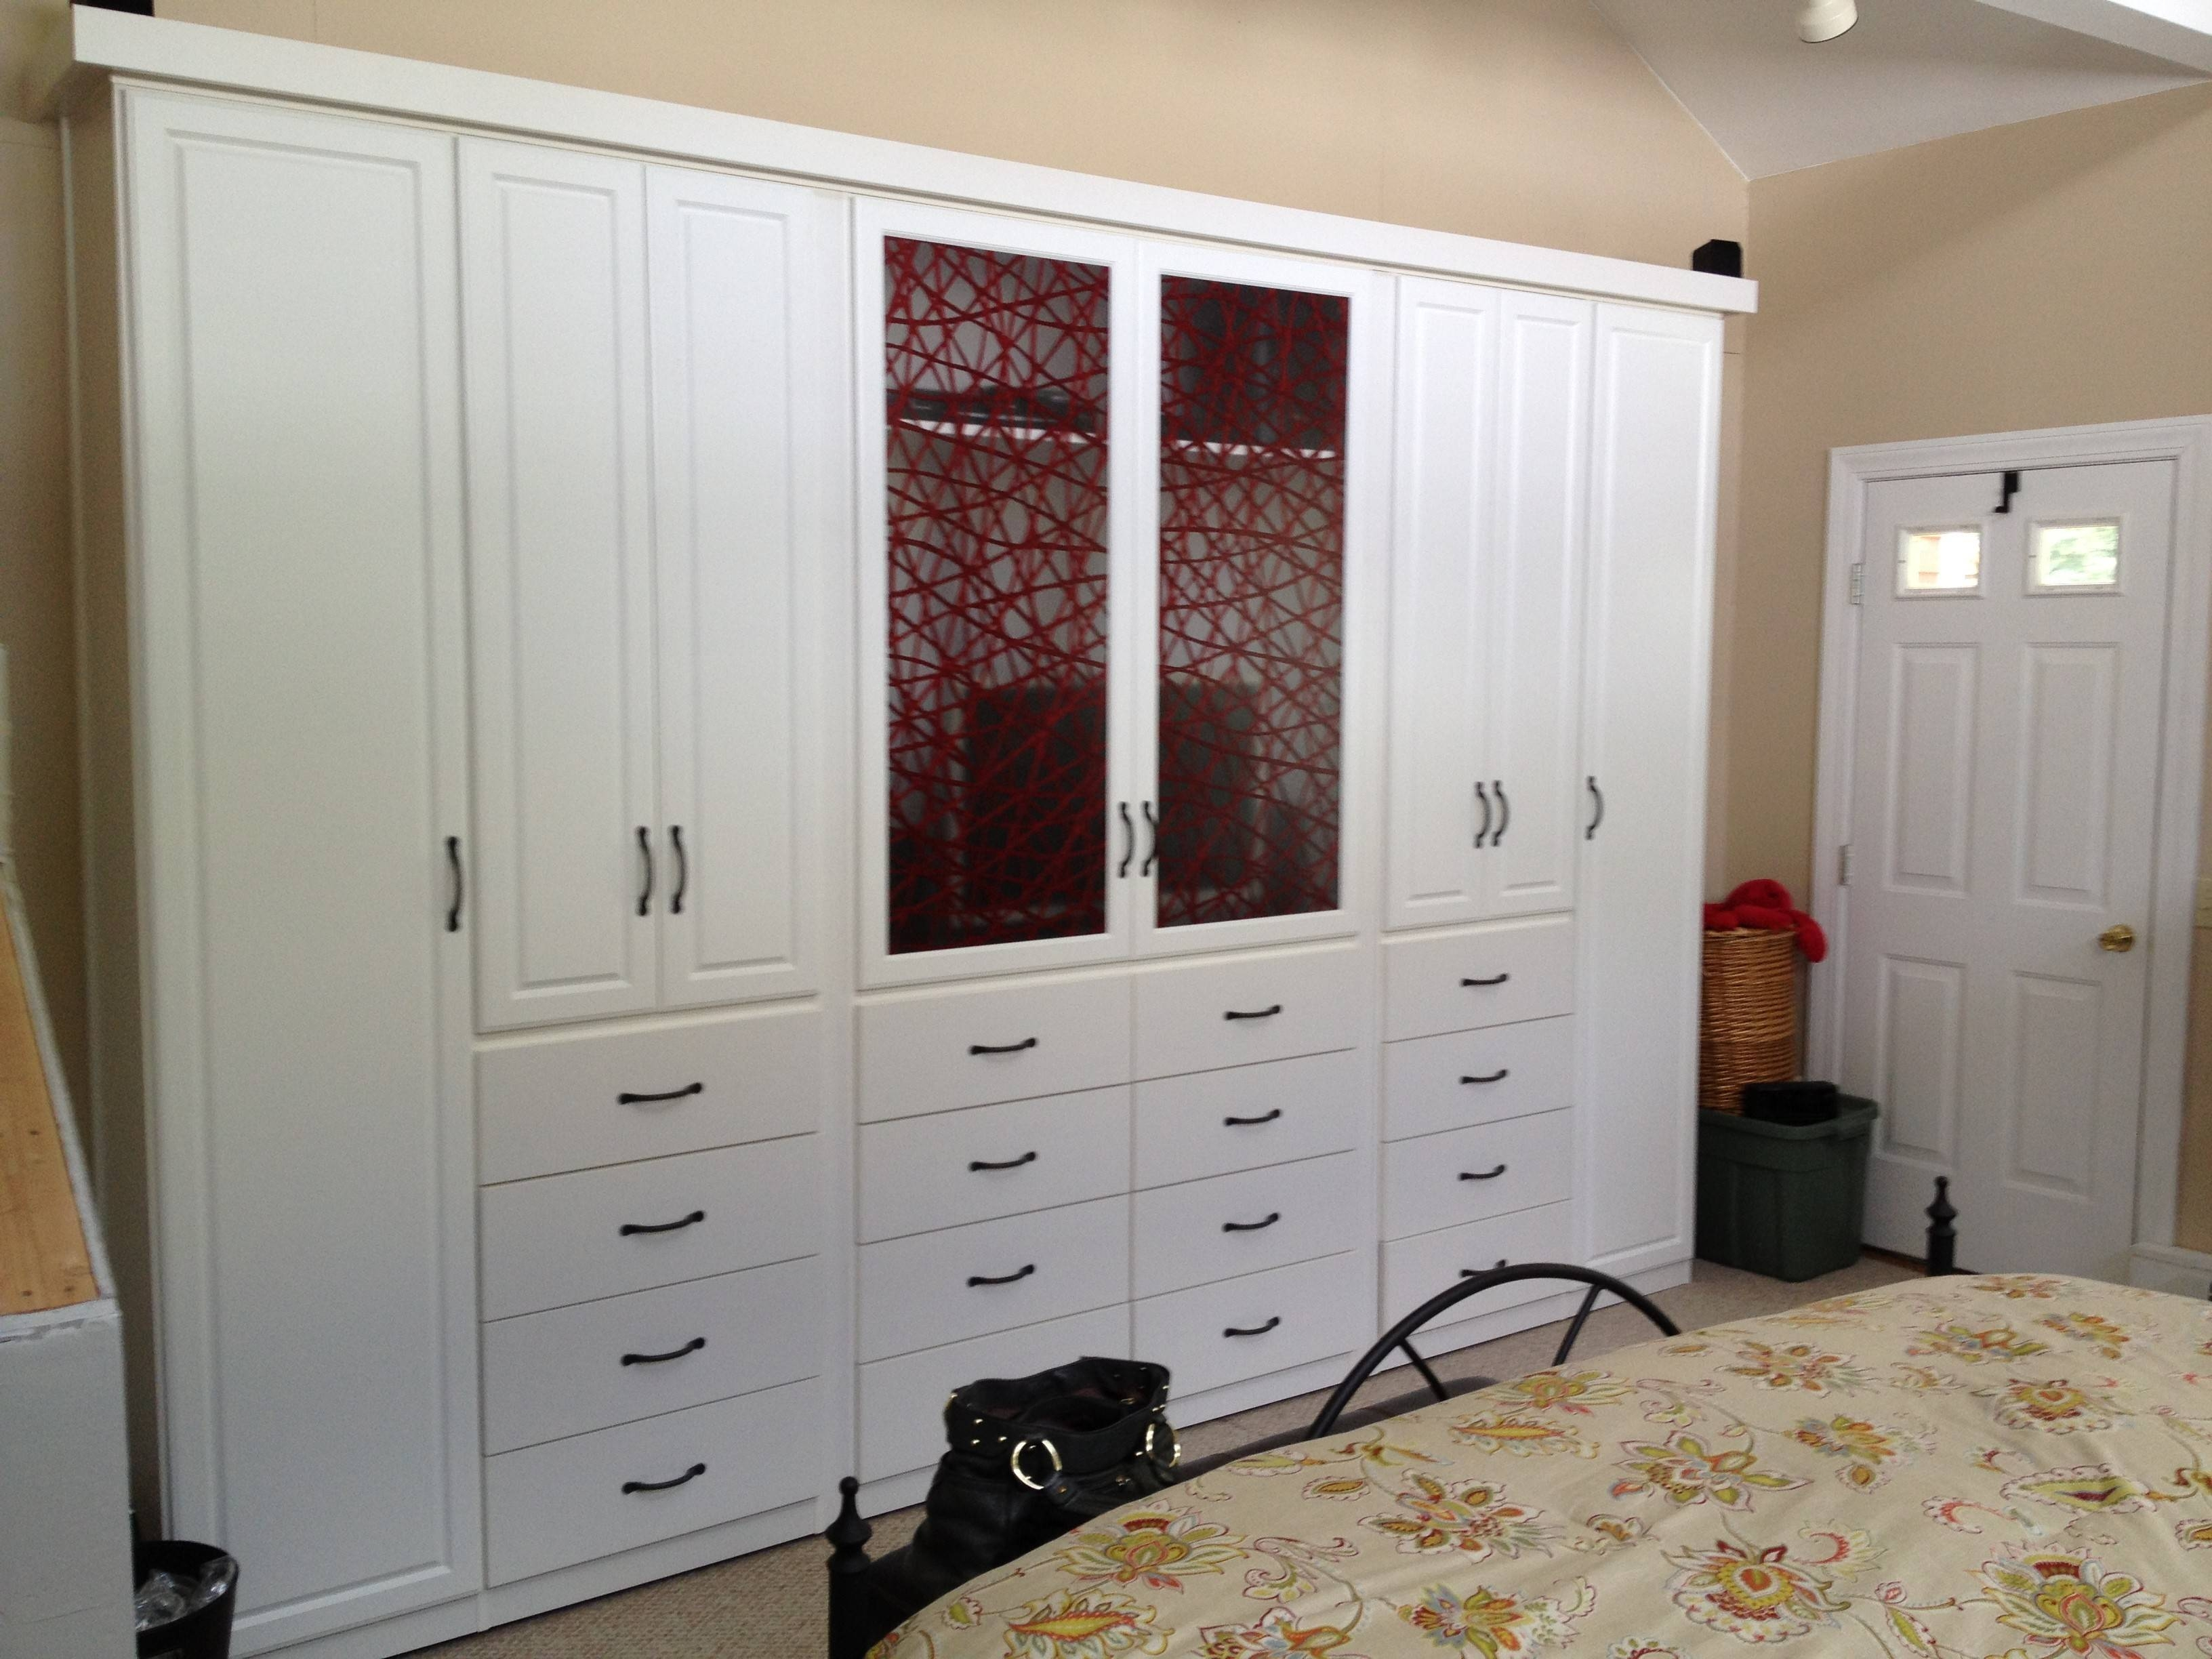 Large White Wooden Wardrobe With Drawers Also Storage Combined intended for White Wood Wardrobes With Drawers (Image 5 of 15)